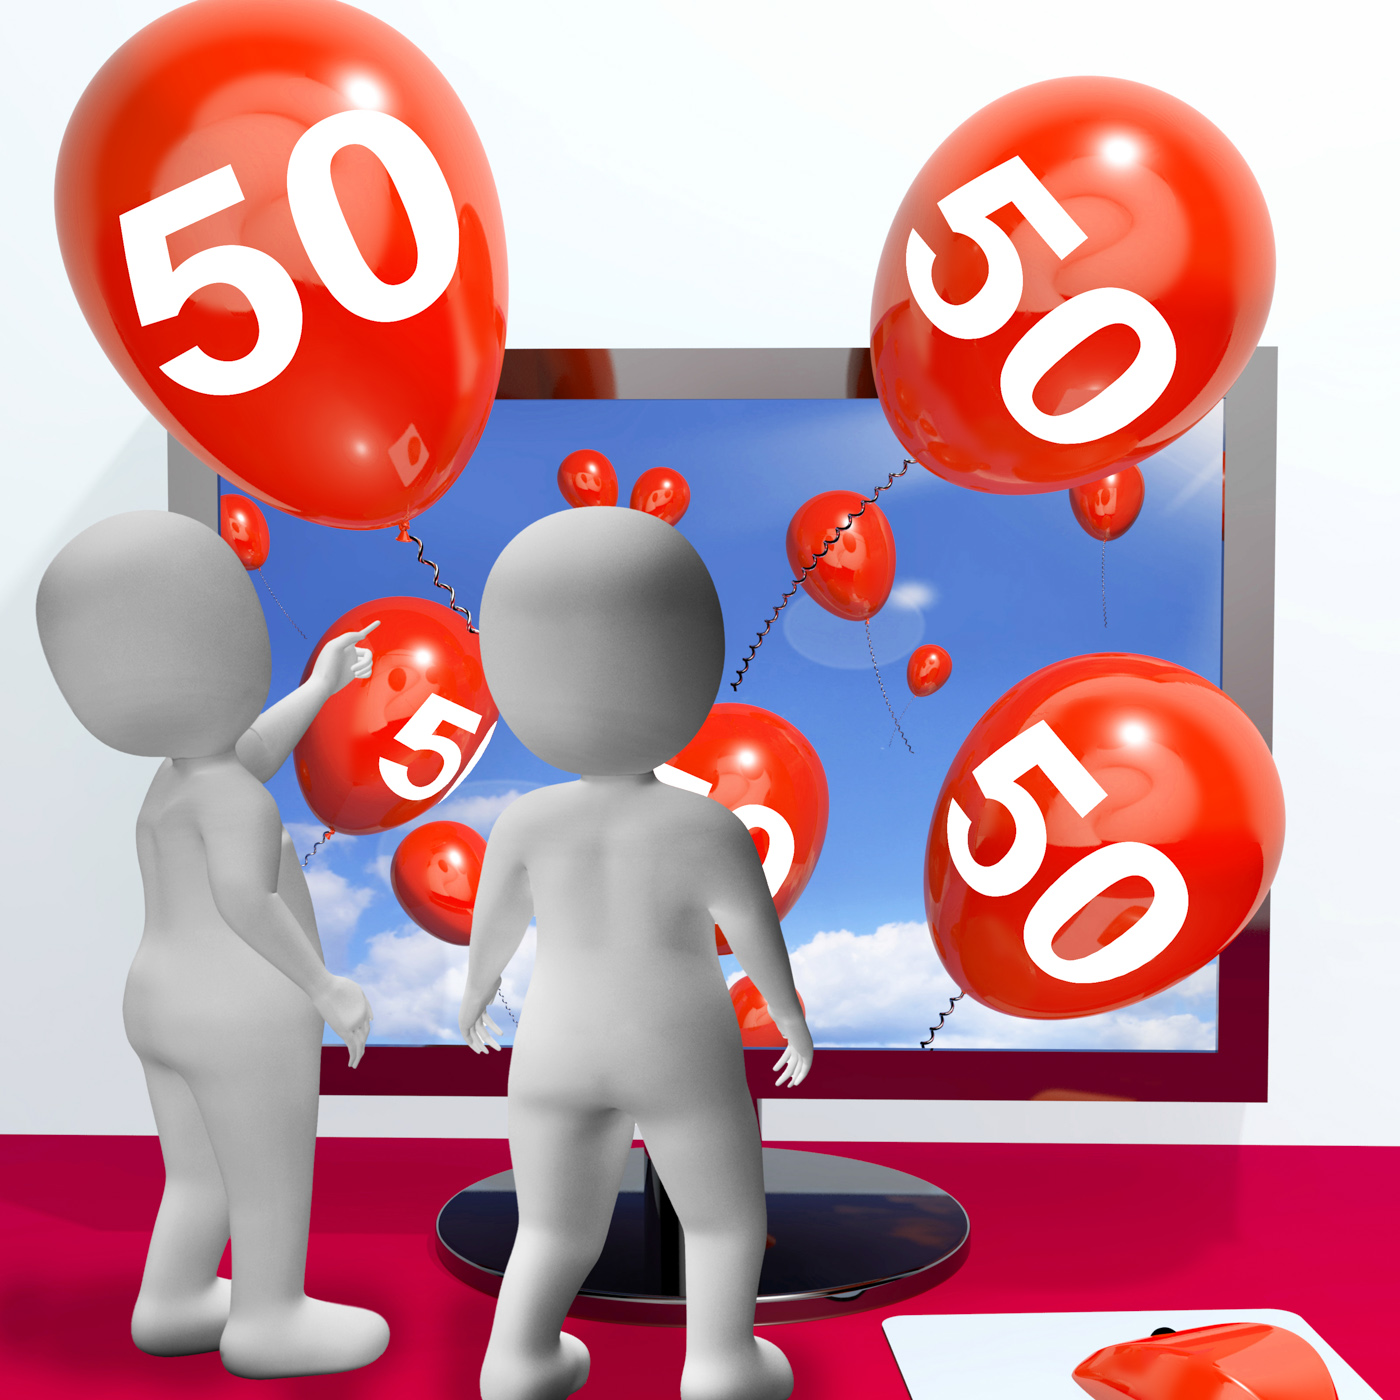 Number 50 balloons from monitor show online invitation or celebration photo